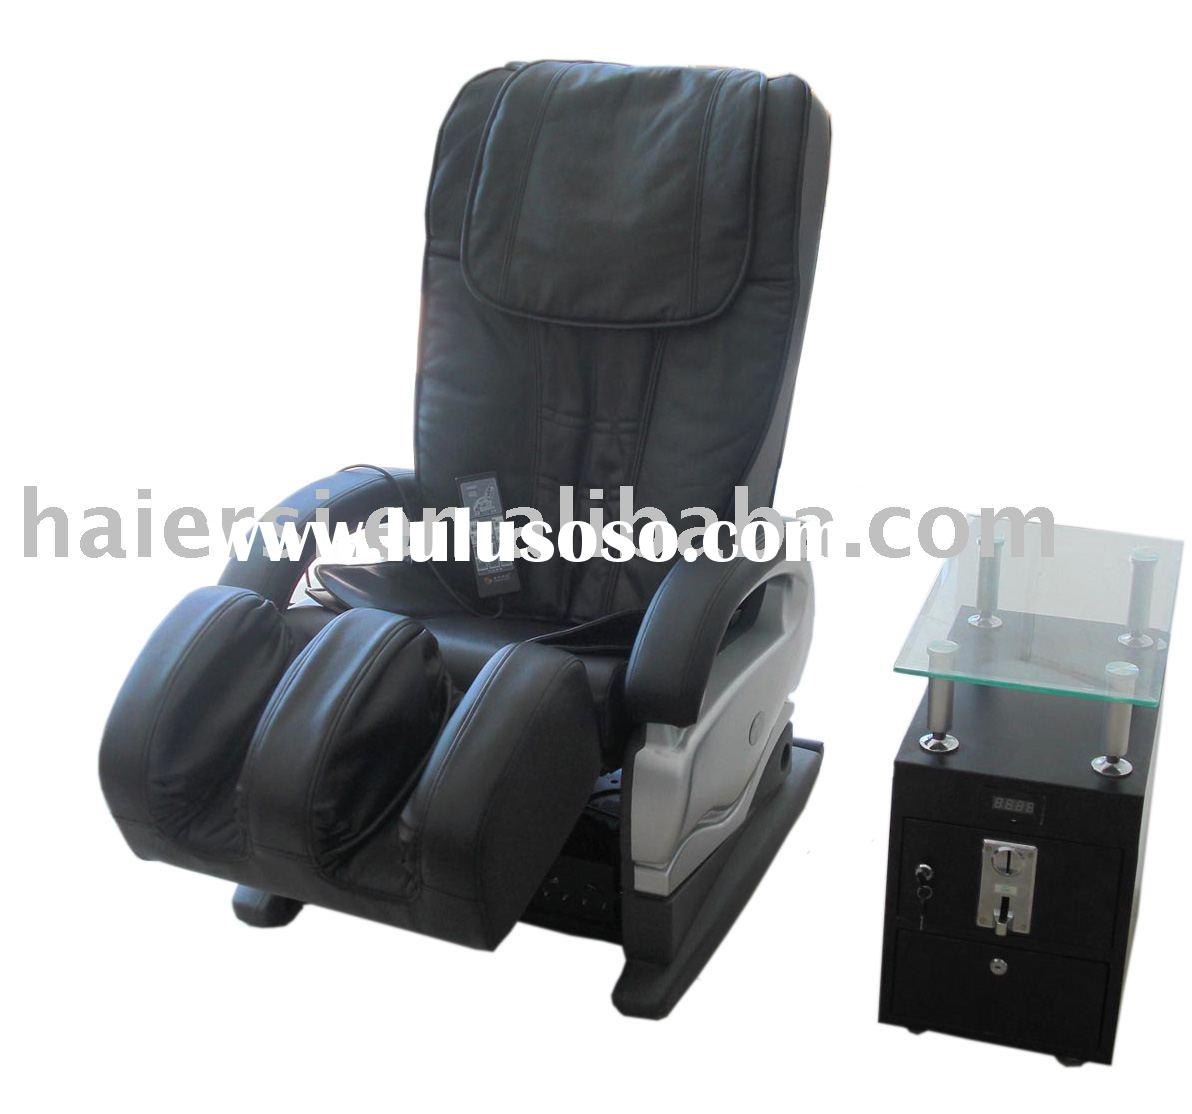 used vending massage chairs for sale ergonomic chair with head support coin operated h004 price